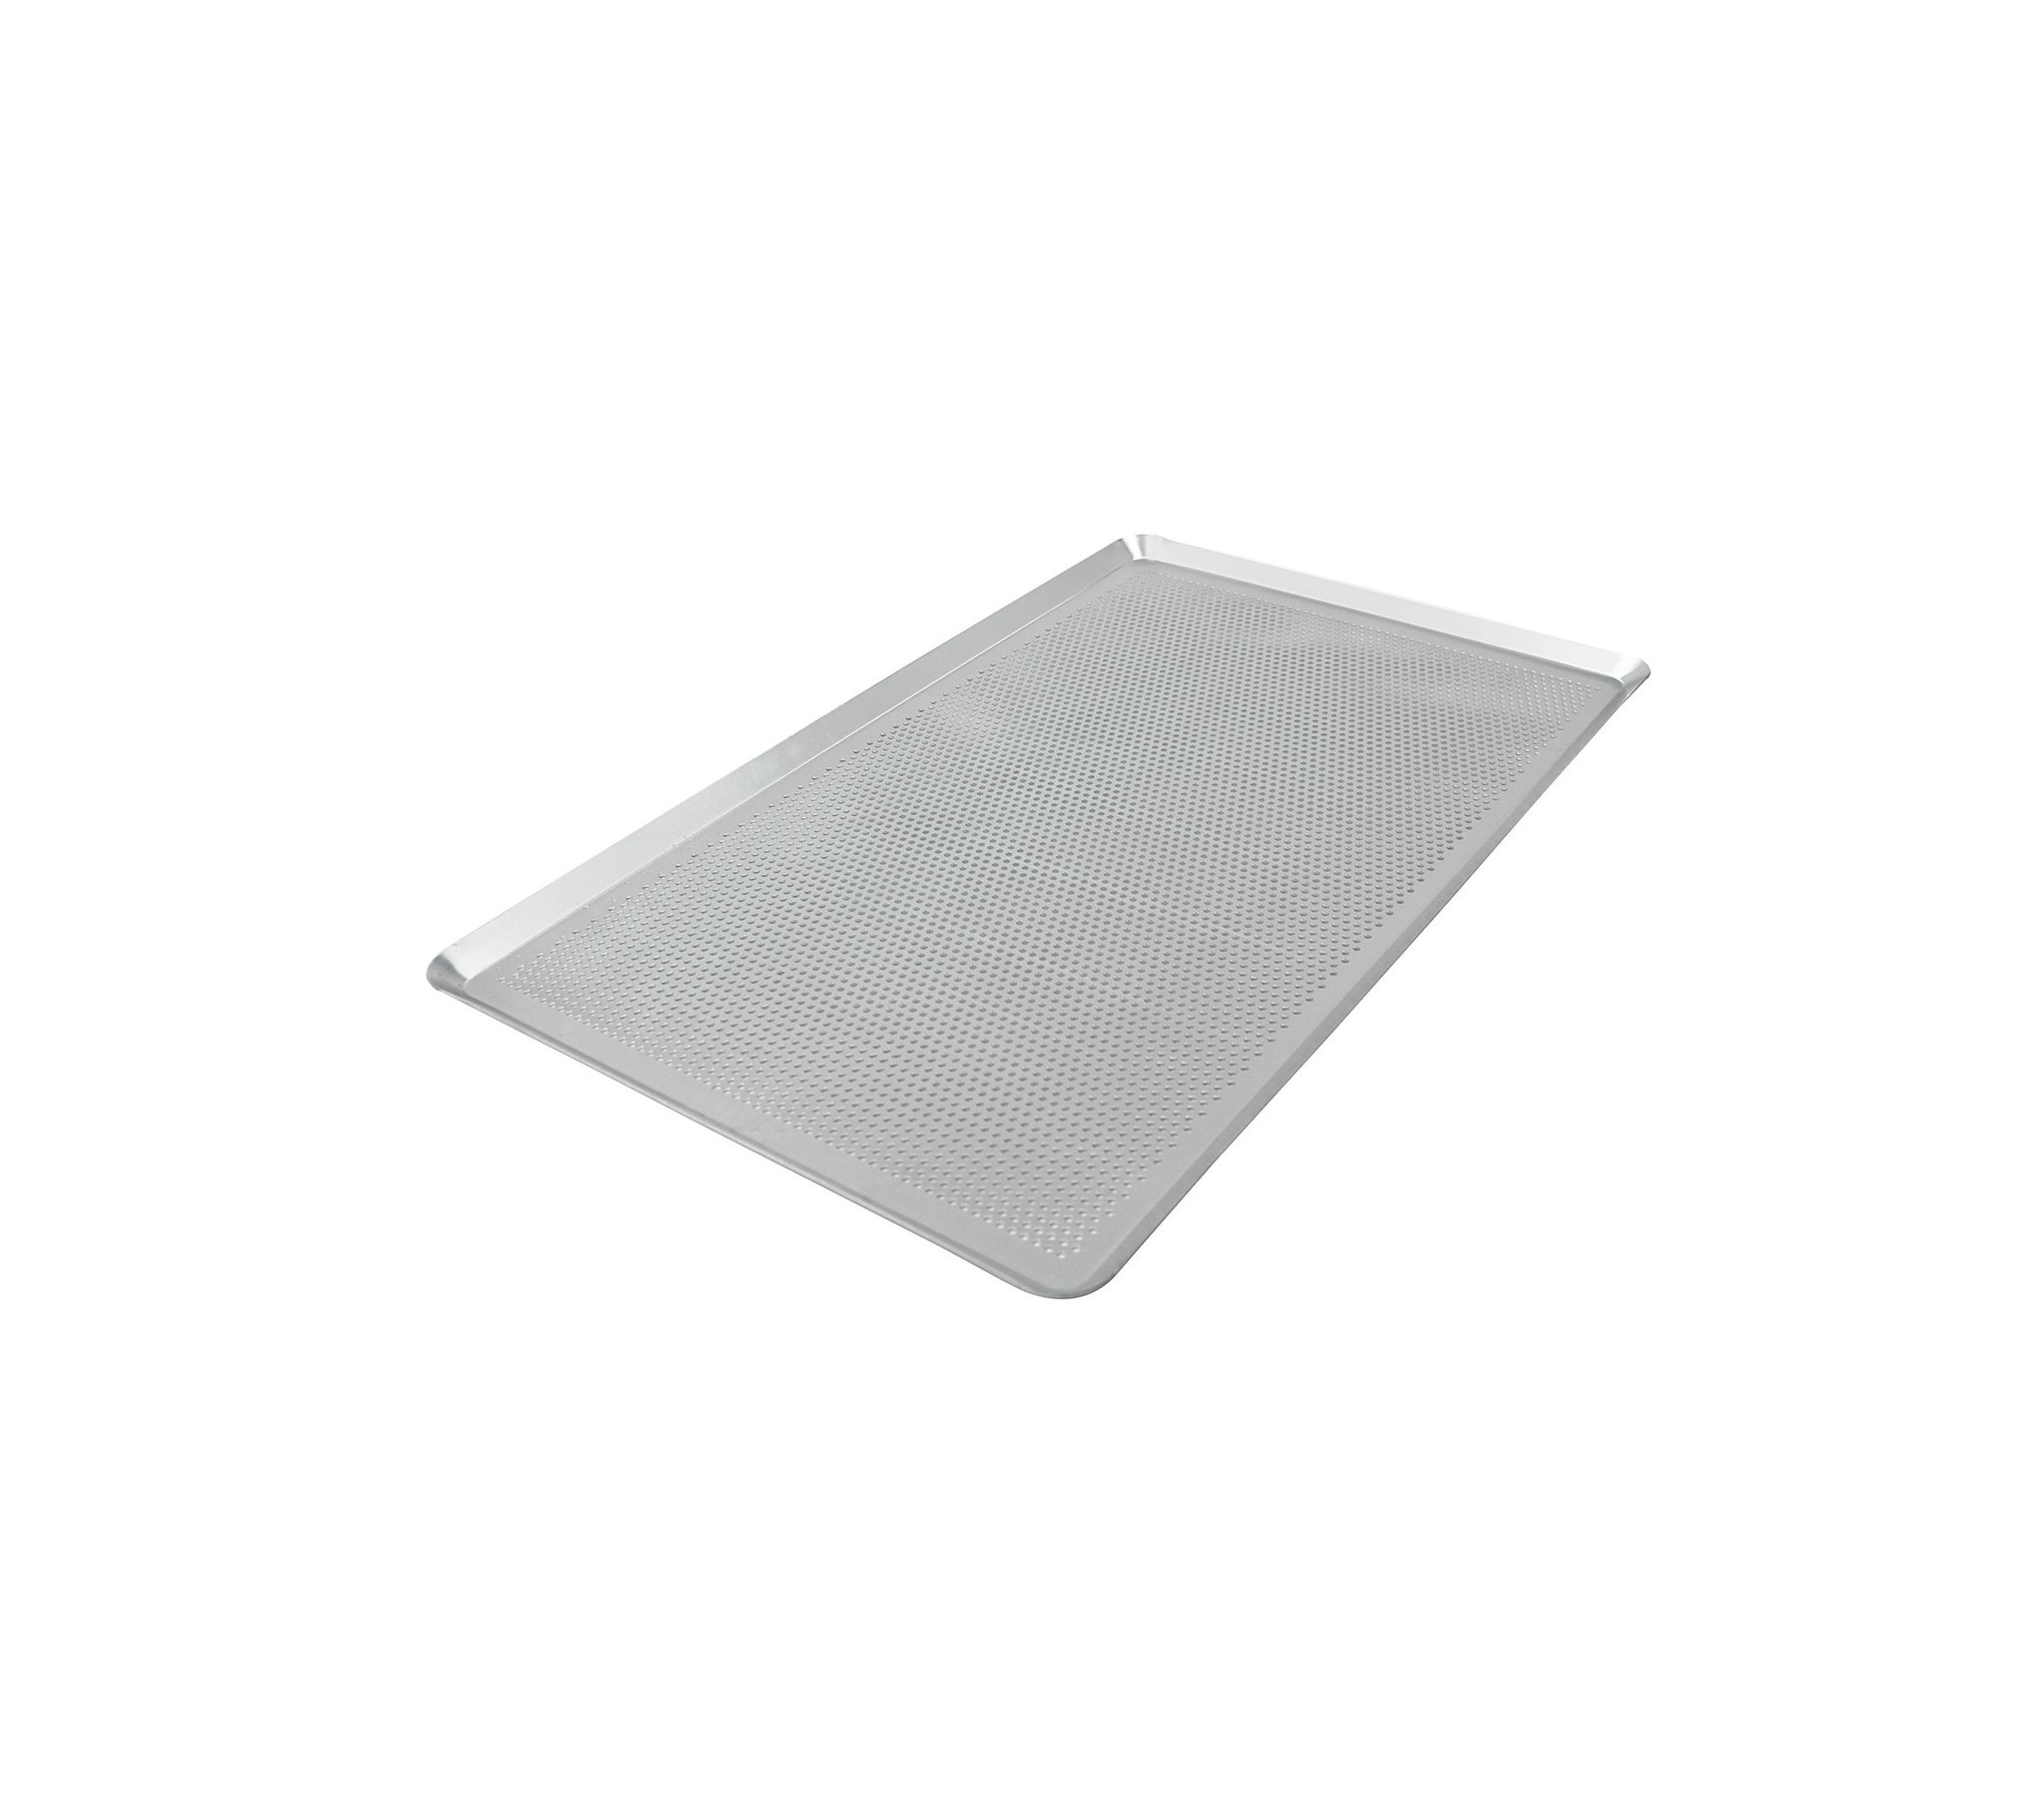 Schneider Aluminum baking tray 1 / 1GN, perforated